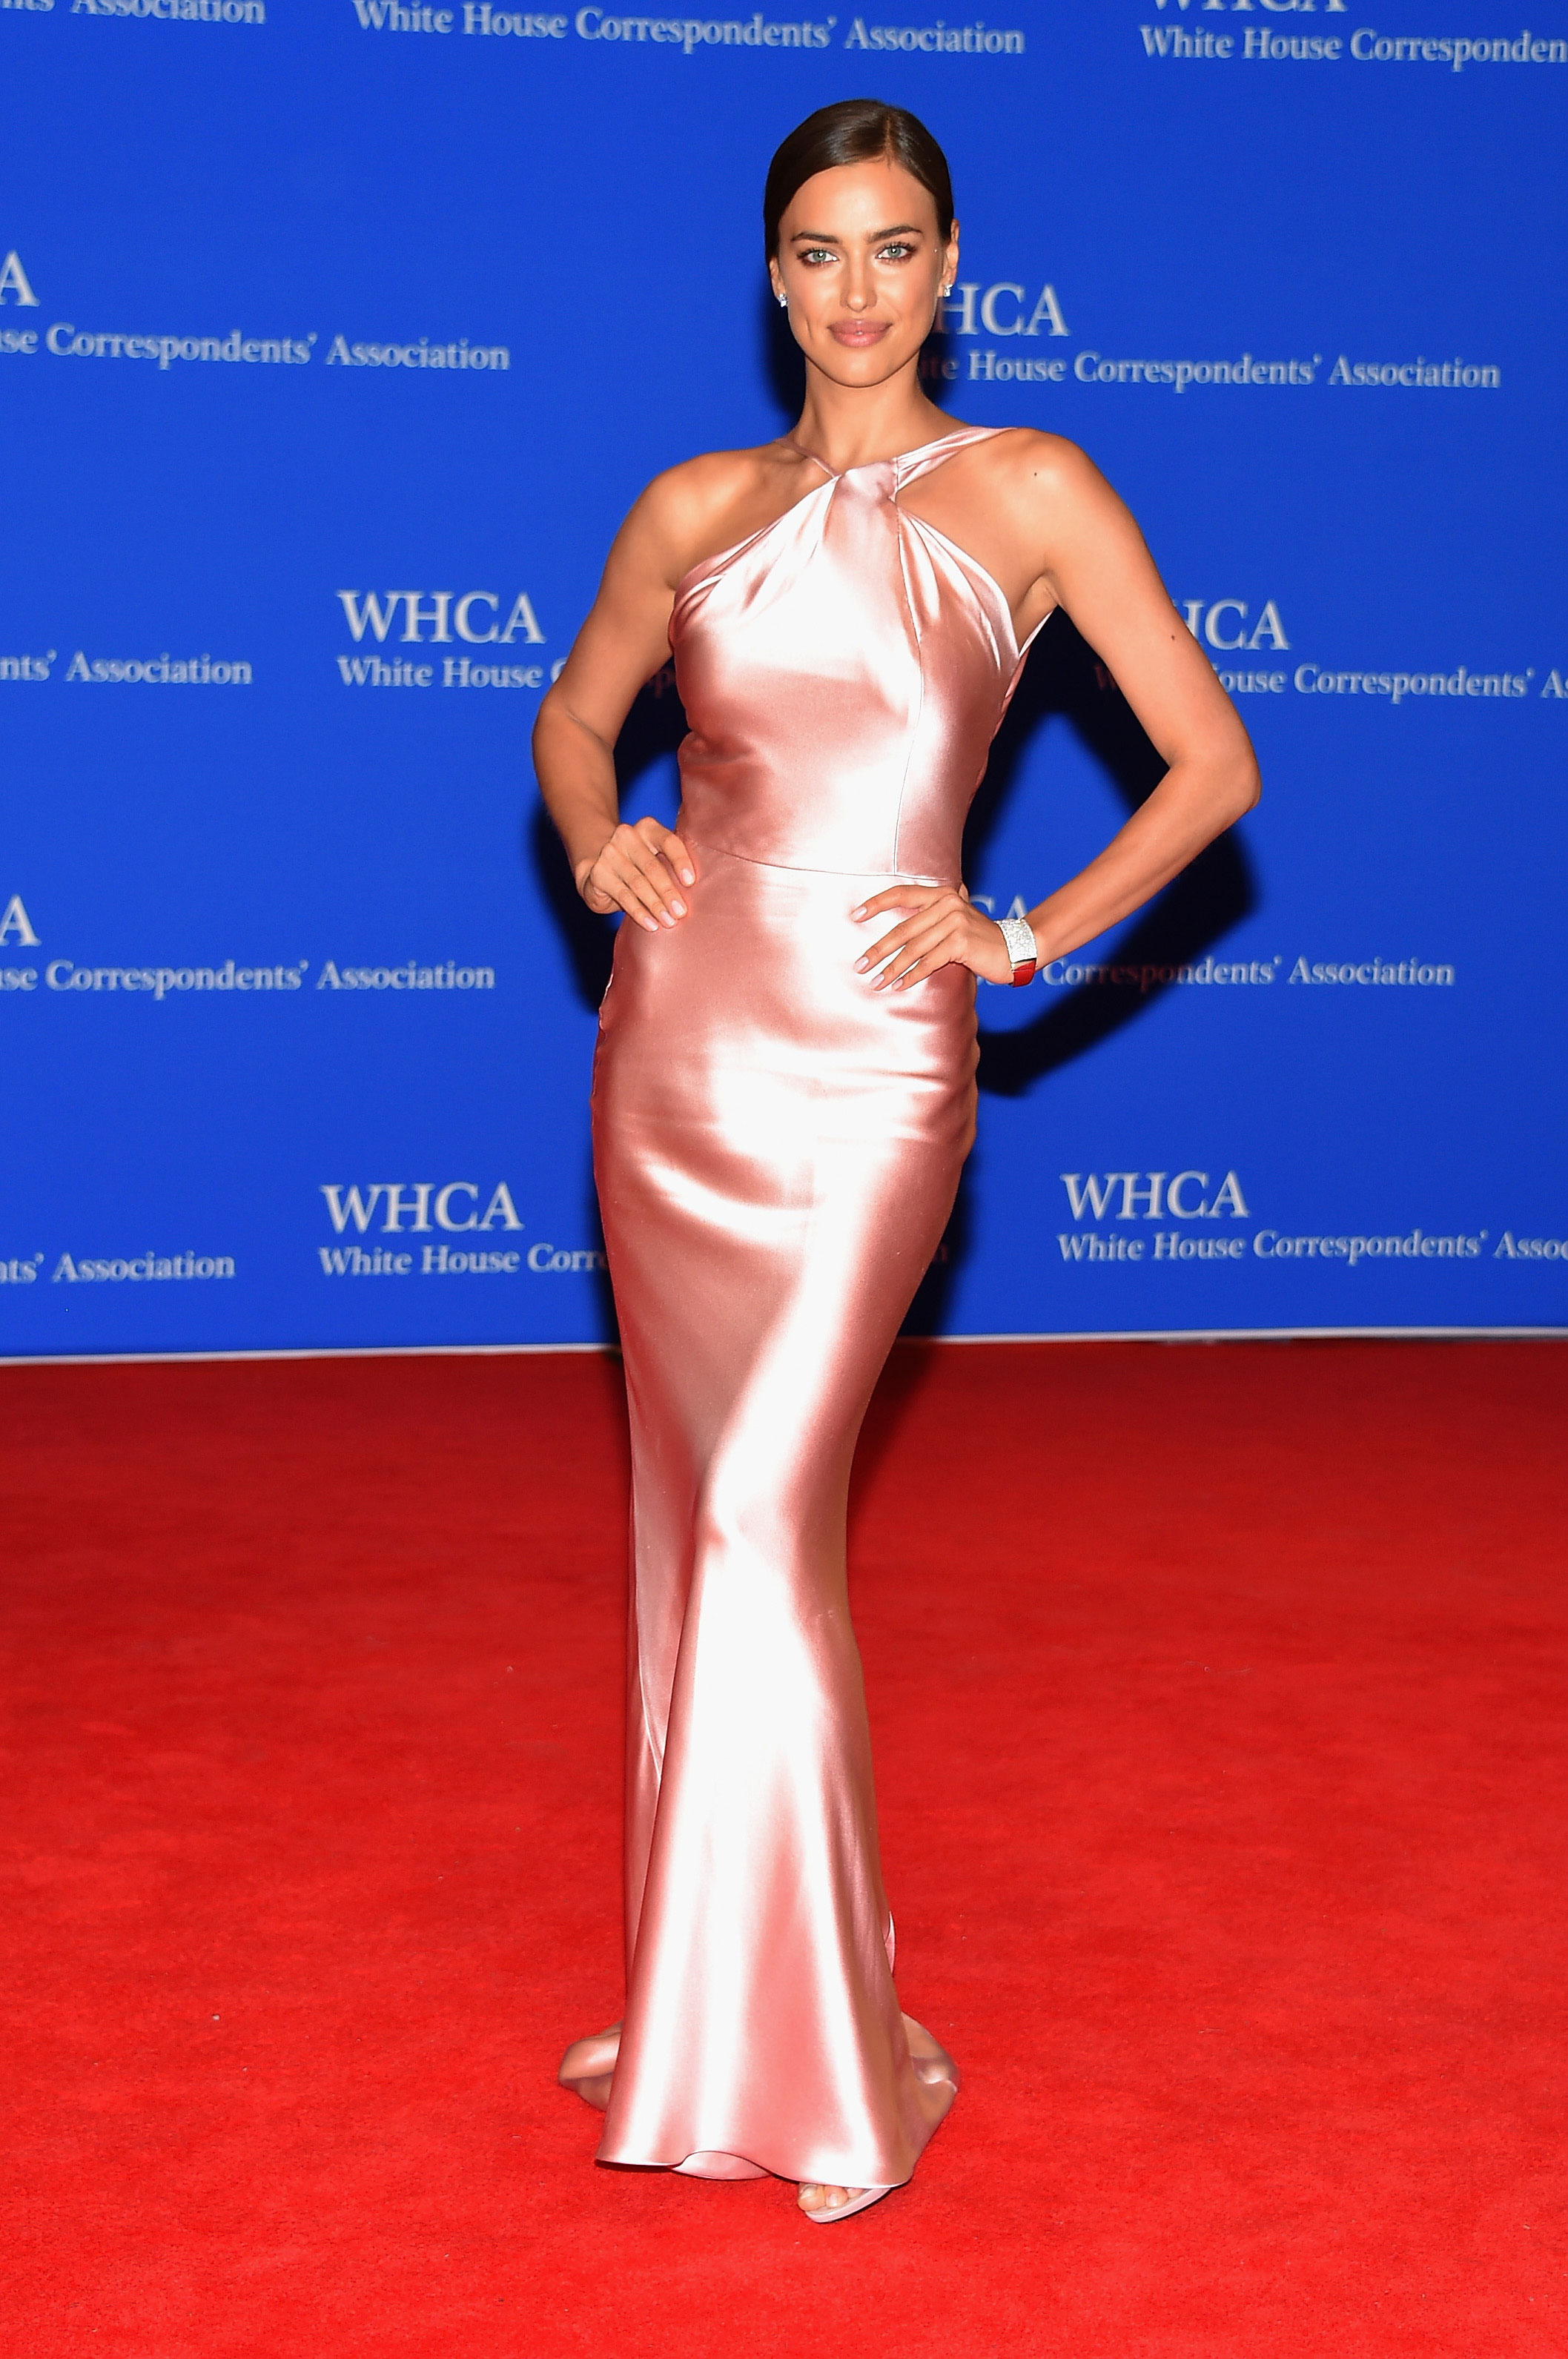 Irina Shayk attends the 101st Annual White House Correspondents' Association Dinner.